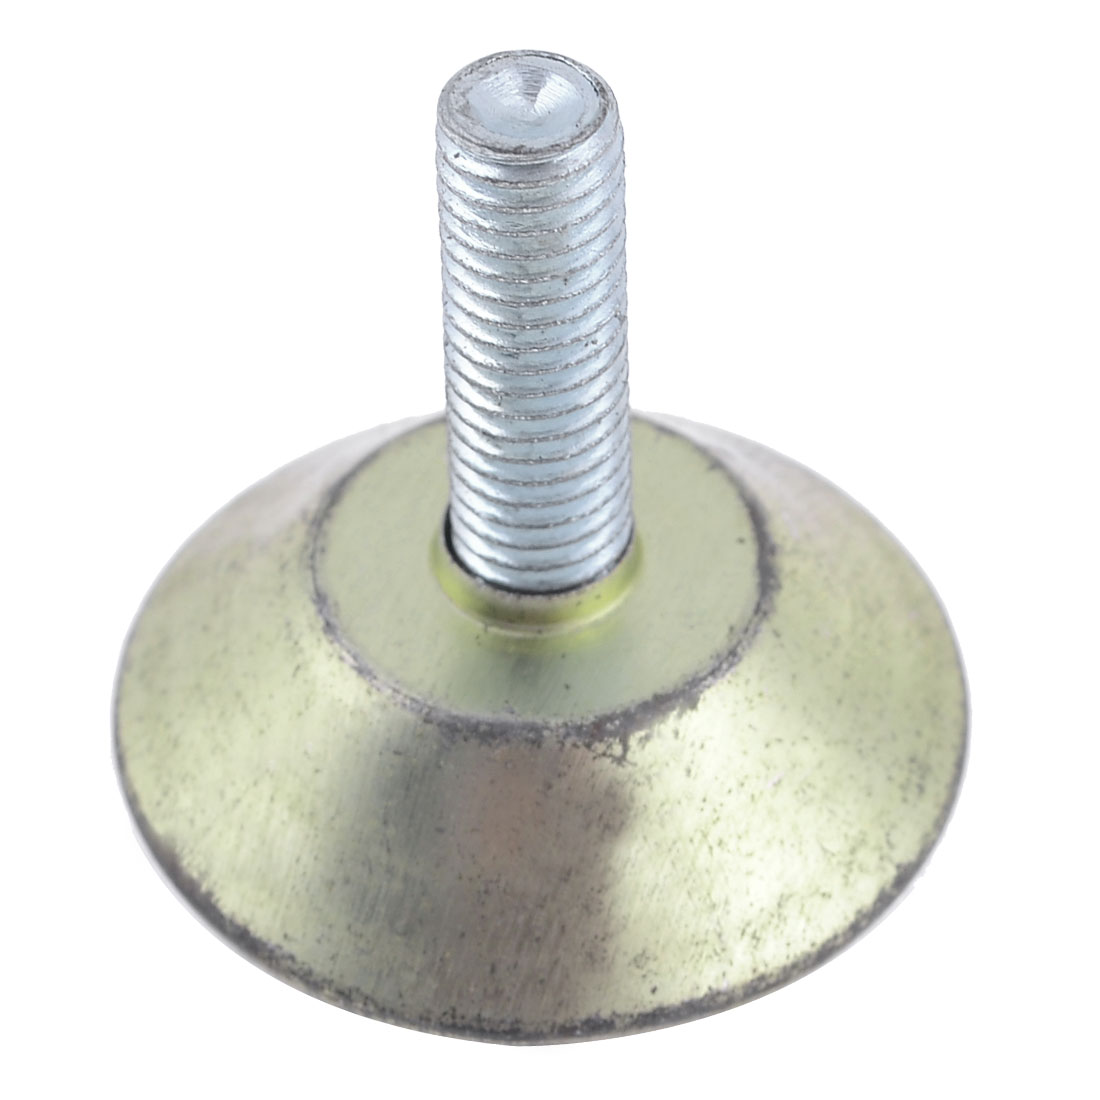 Metal Threaded Rod Round Plastic Base Leveling Foot 8mmx23mmx37mm